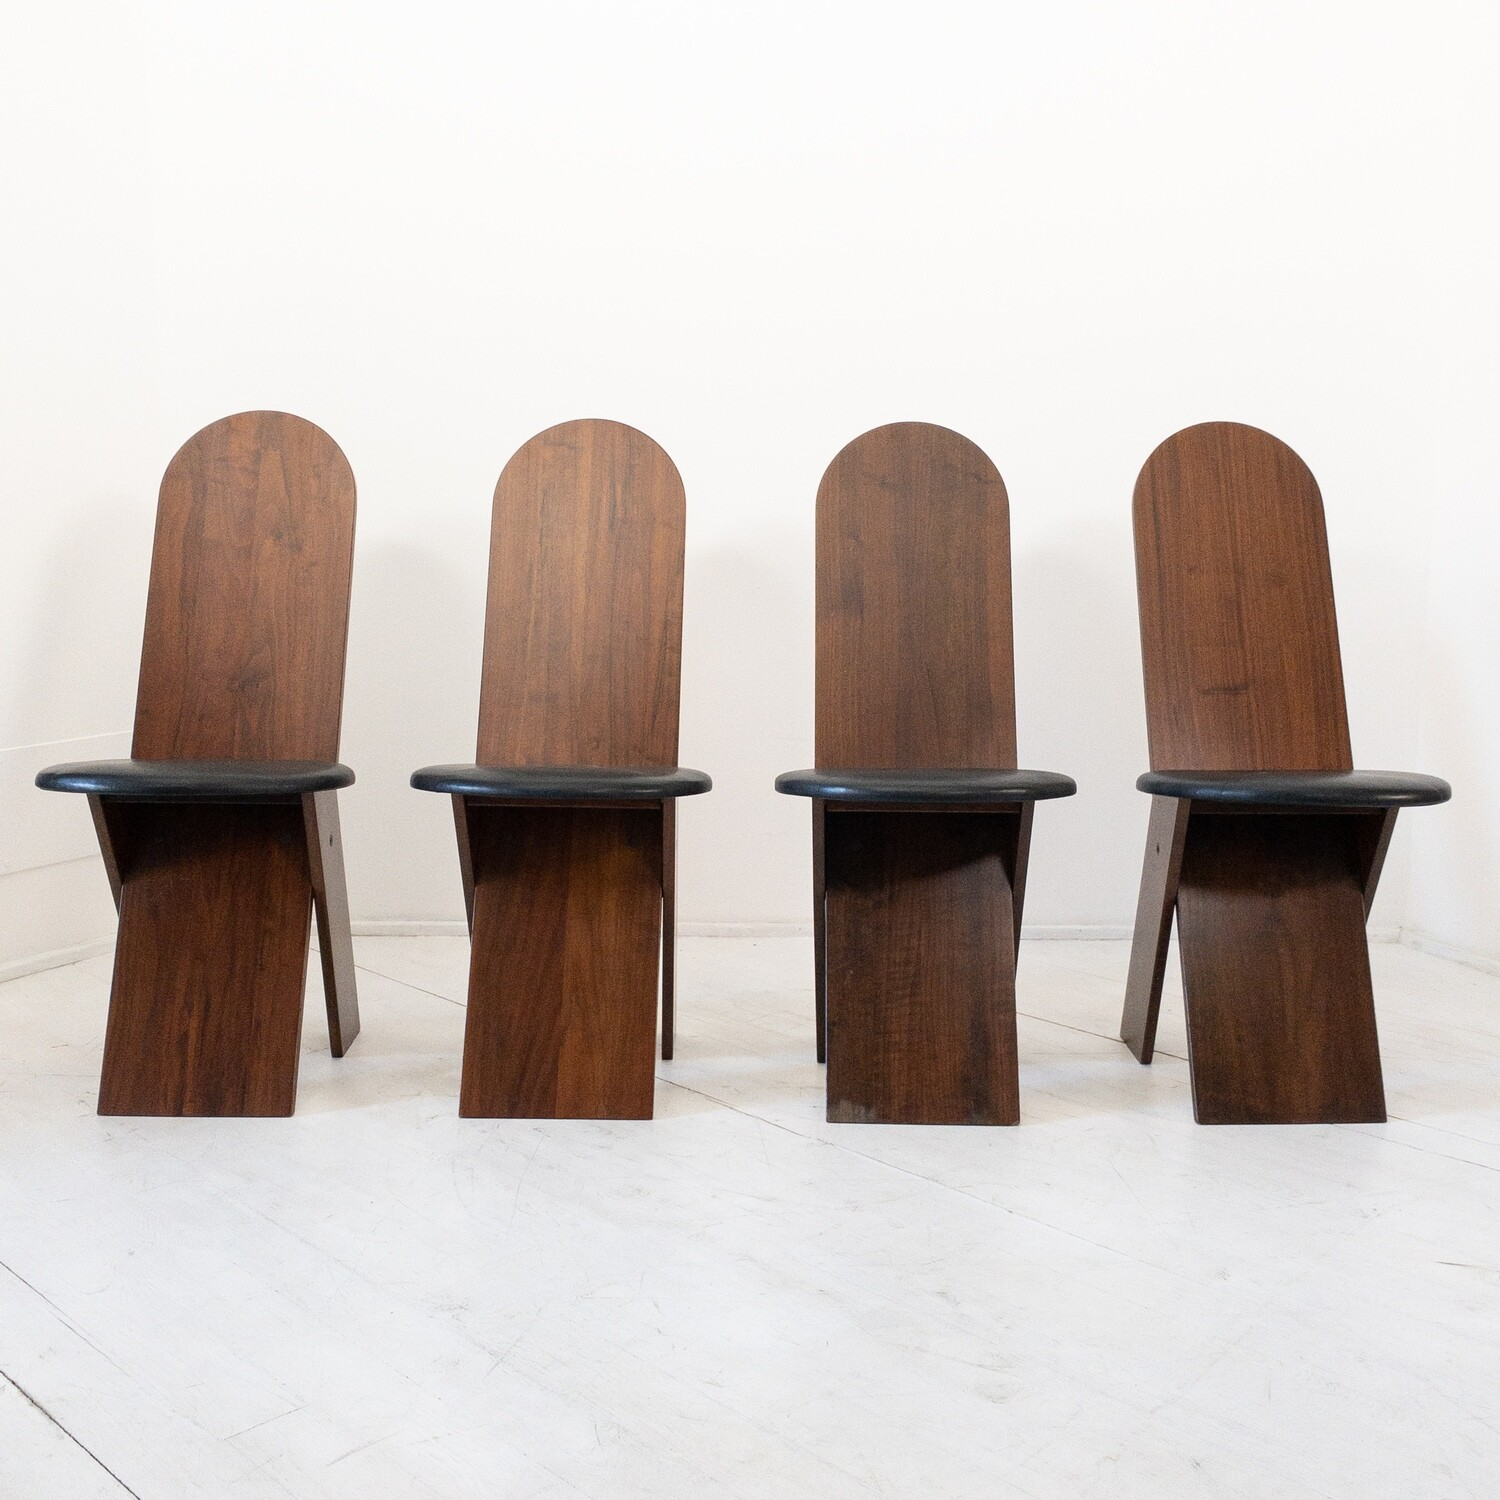 Set of 4 chairs designed by Marco Zanuso for Poggi 1970